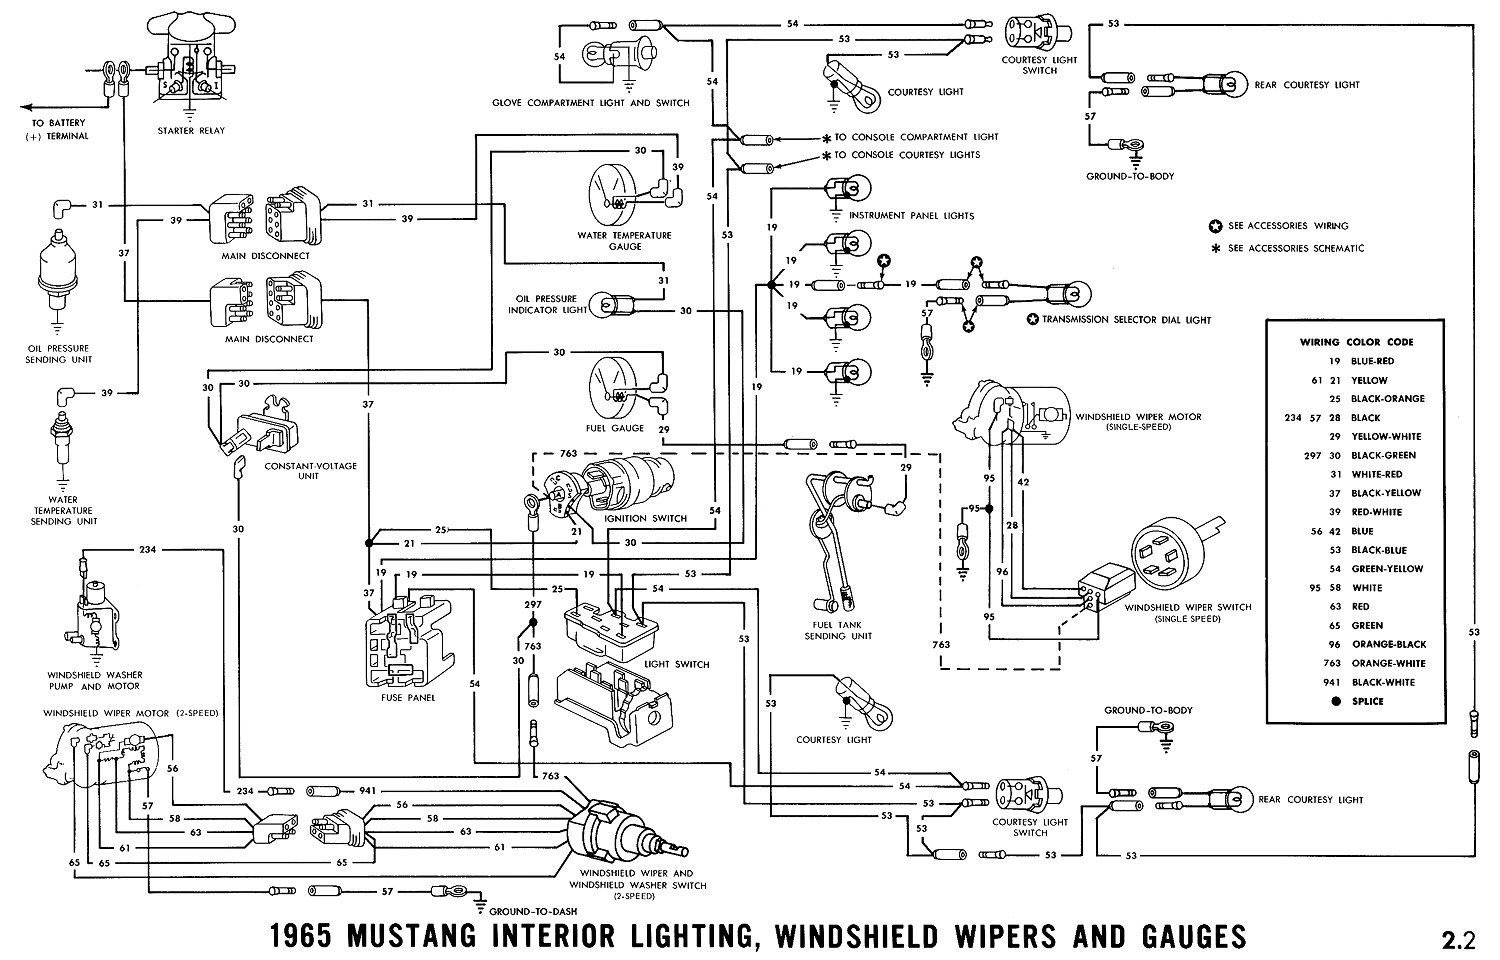 1965g 1965 mustang wiring diagrams average joe restoration 68 mustang fuse box diagram at bakdesigns.co